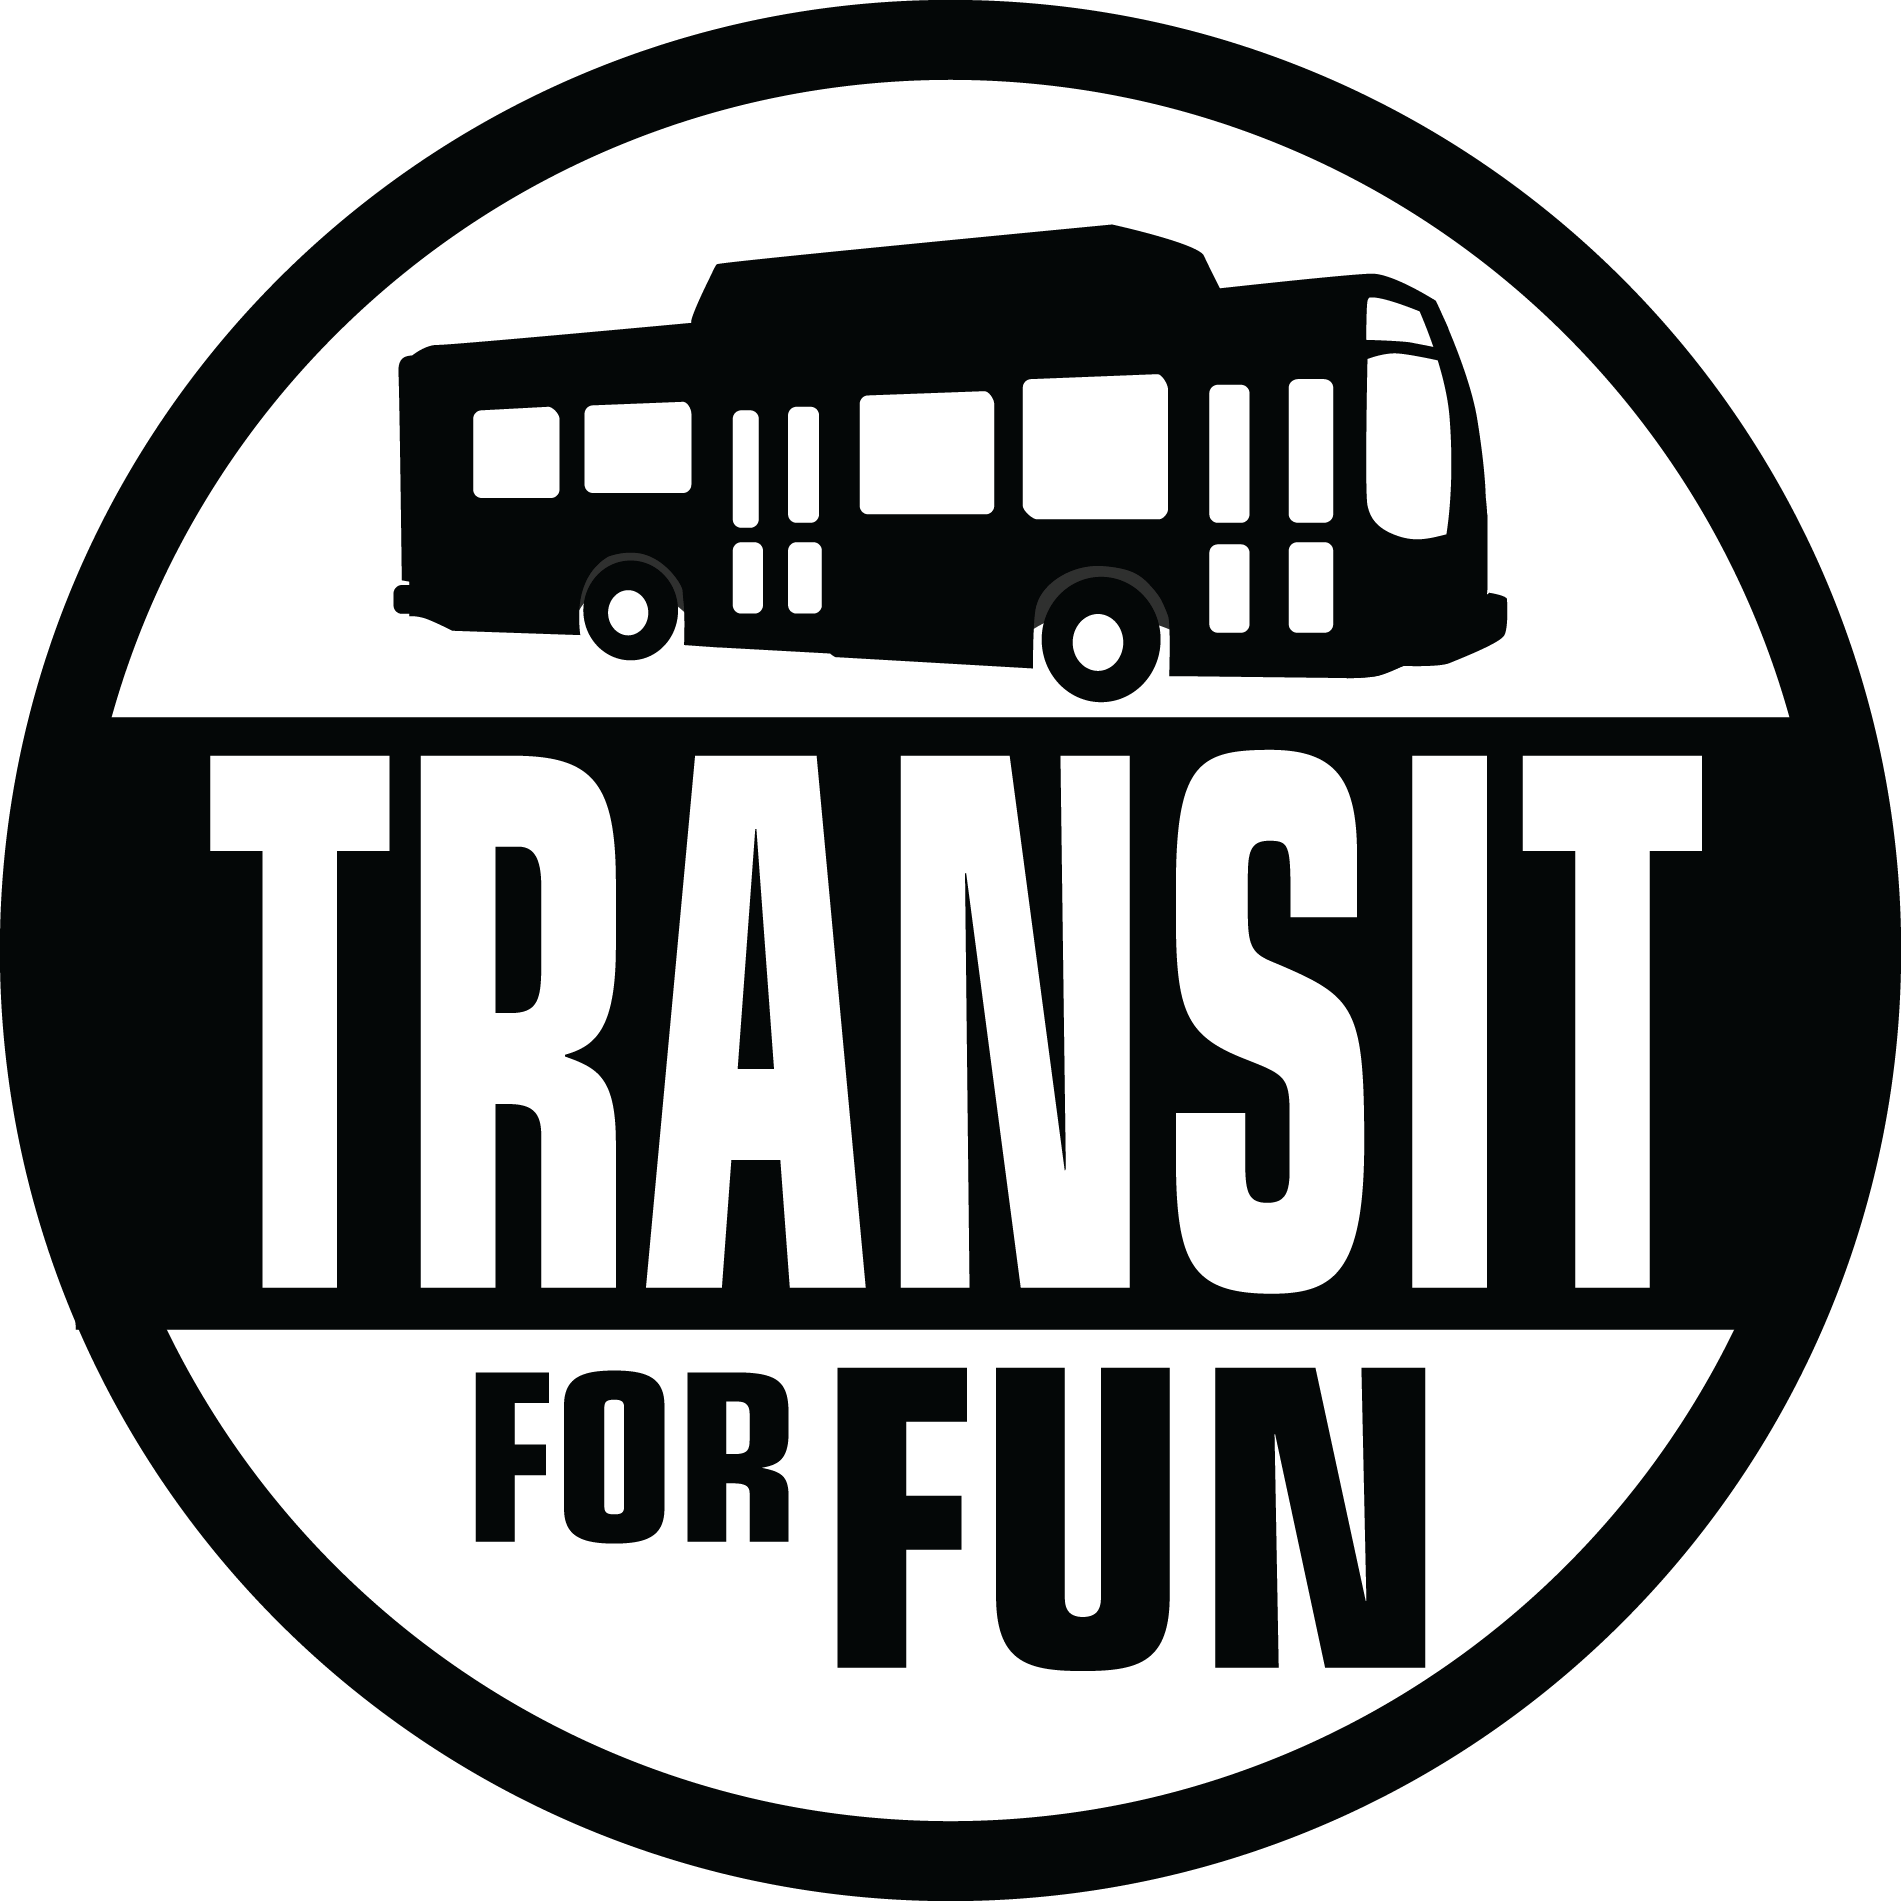 Driver clipart riding city bus. Transit for fun circulate